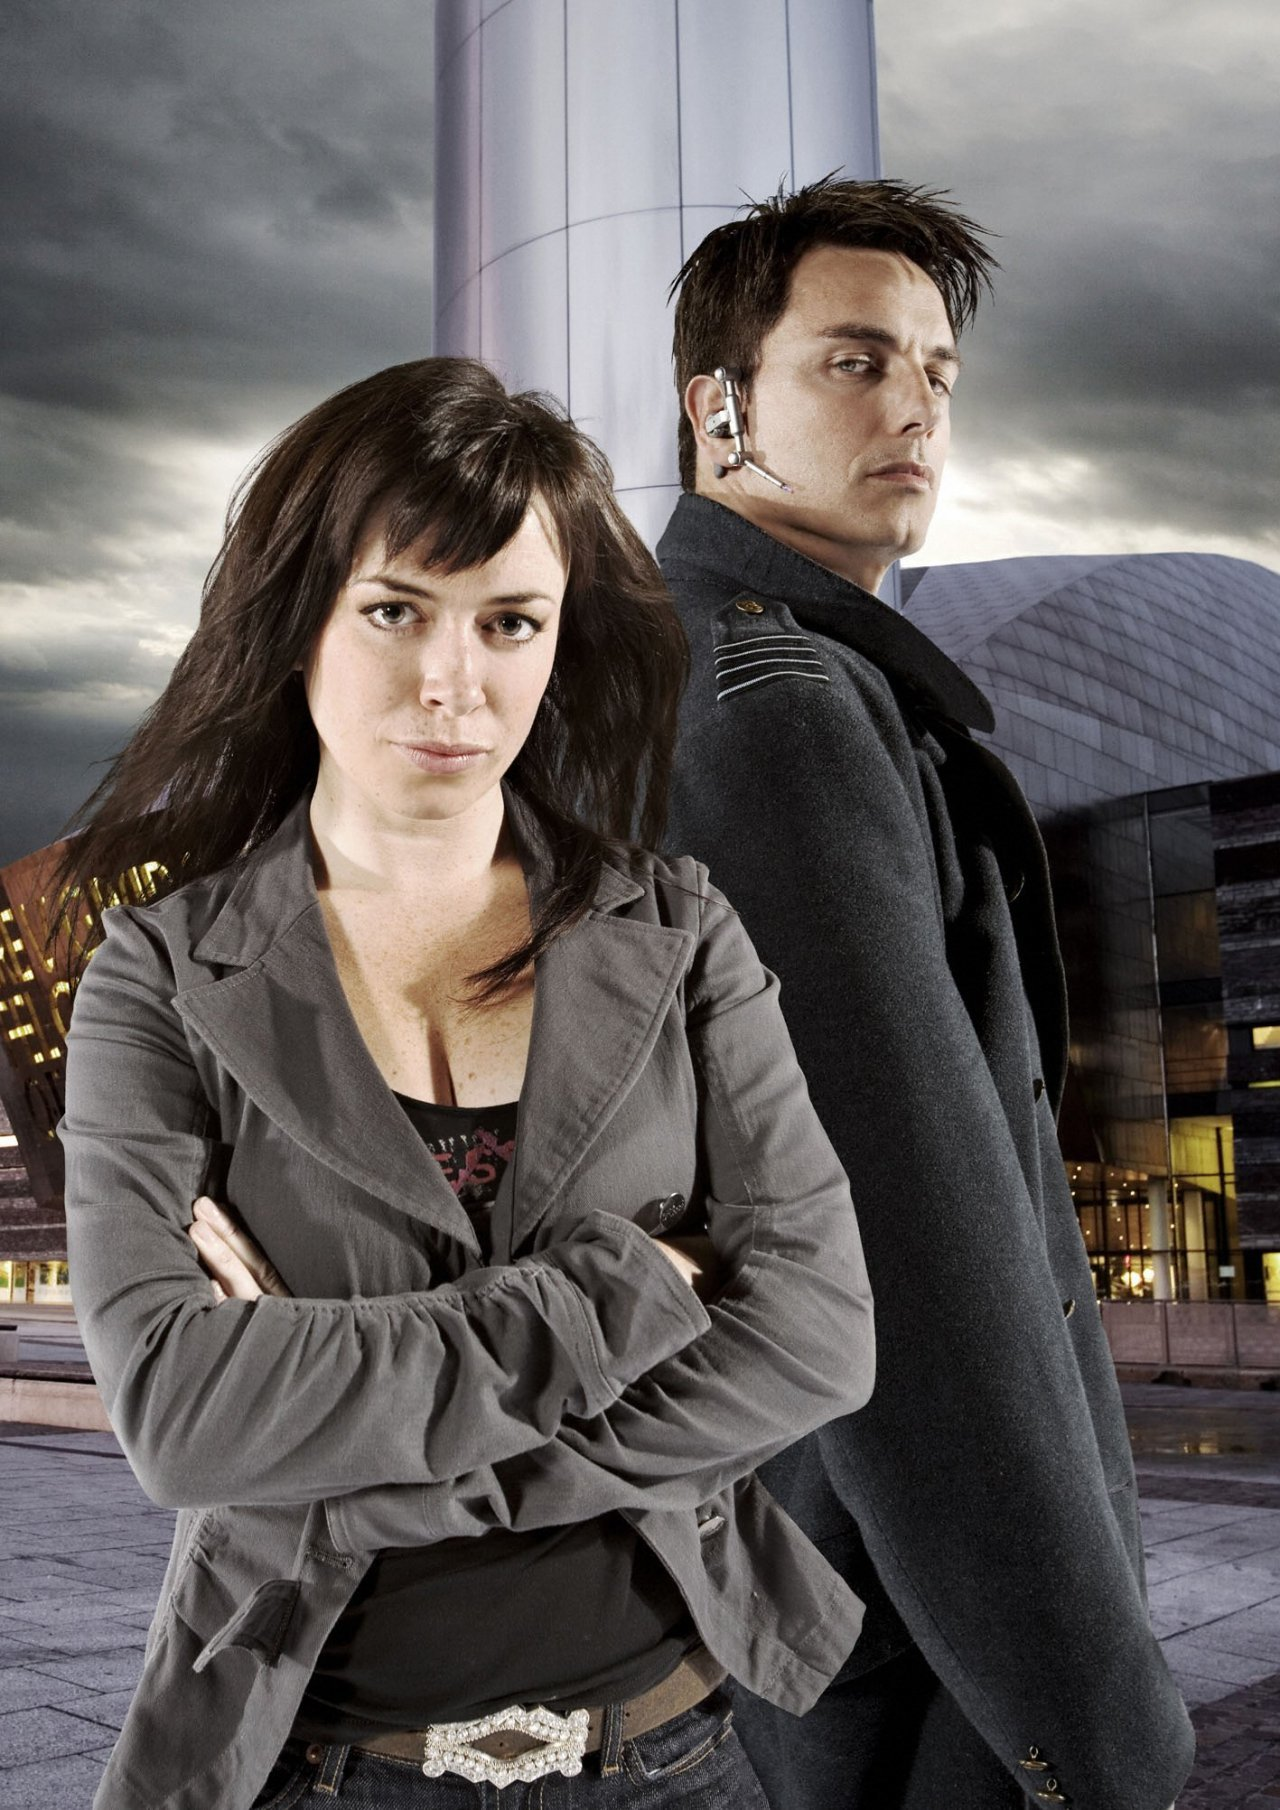 Jack Torchwood eve myles